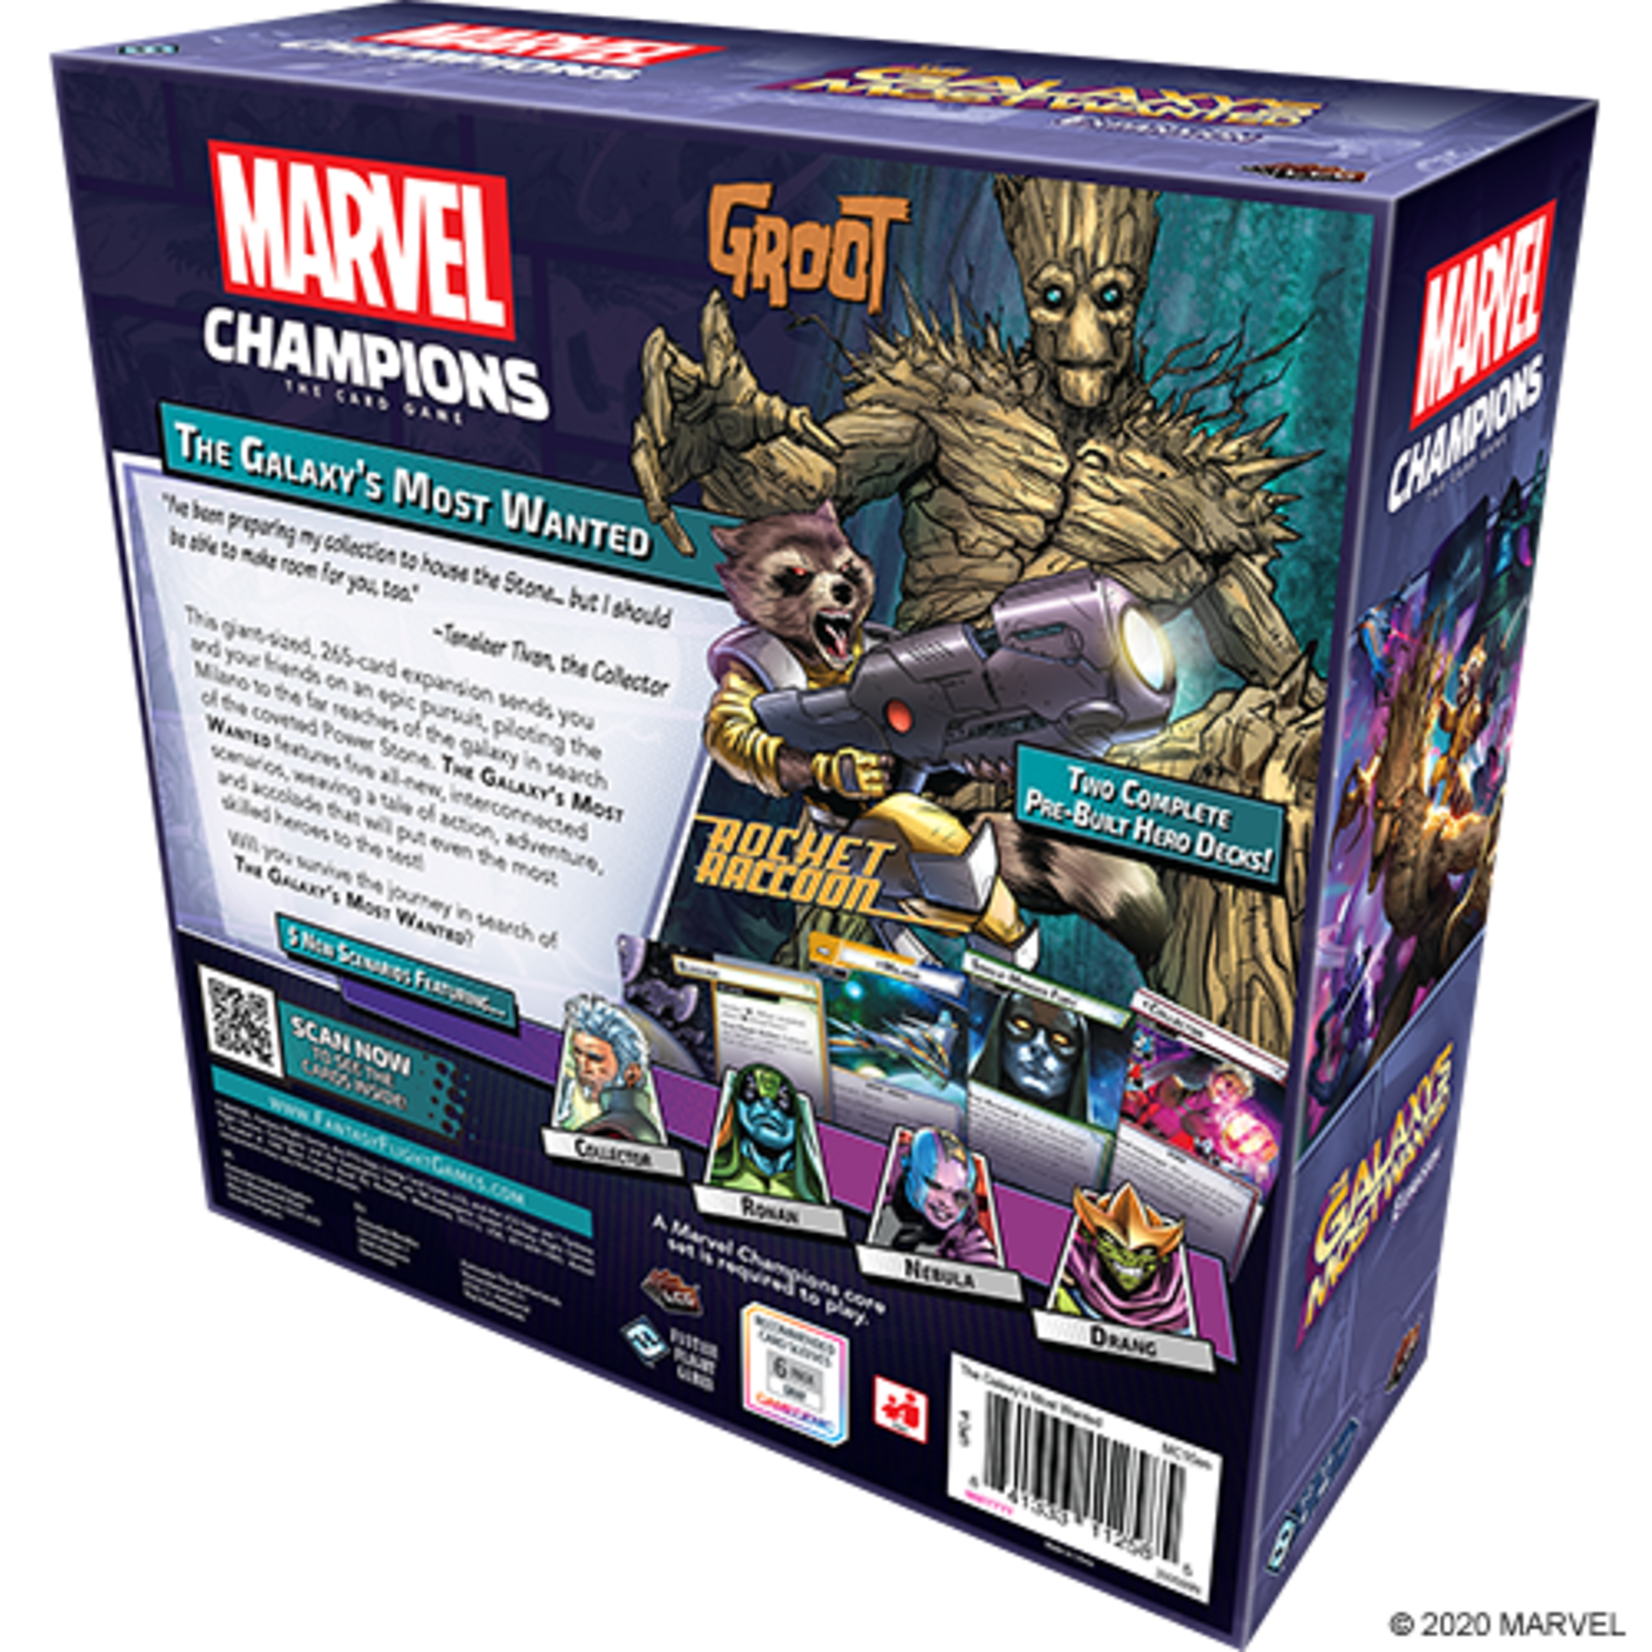 Pre-Order Marvel Champions LCG: The Galaxy's Most Wanted